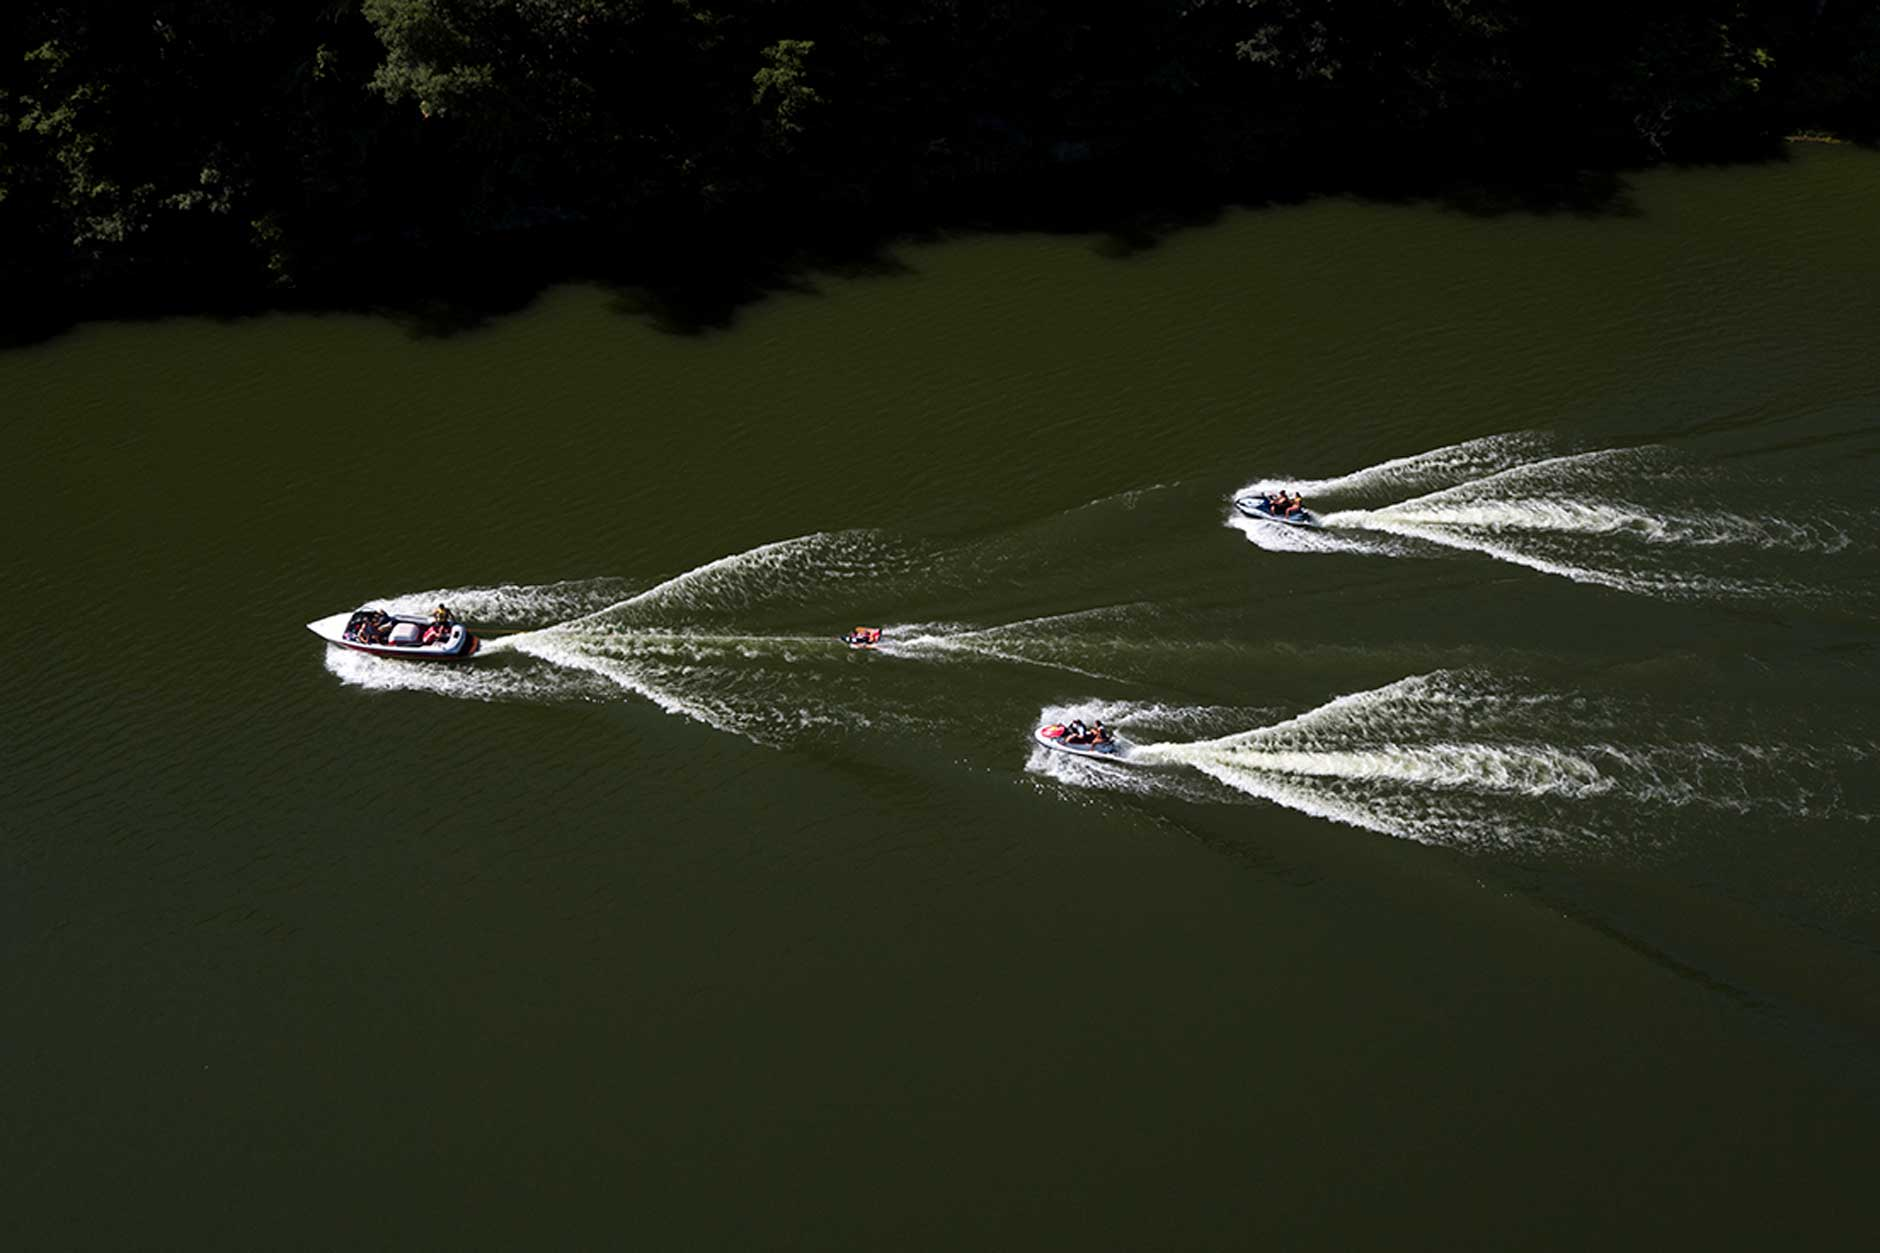 Campers take part in an adaptive water skiing activity at Bradford Woods near Martinsville on Tuesday, July 17, 2018. The water skiing is organized by the Rehabilitation Hospital of Indiana (RHI). (James Brosher/IU Communications)